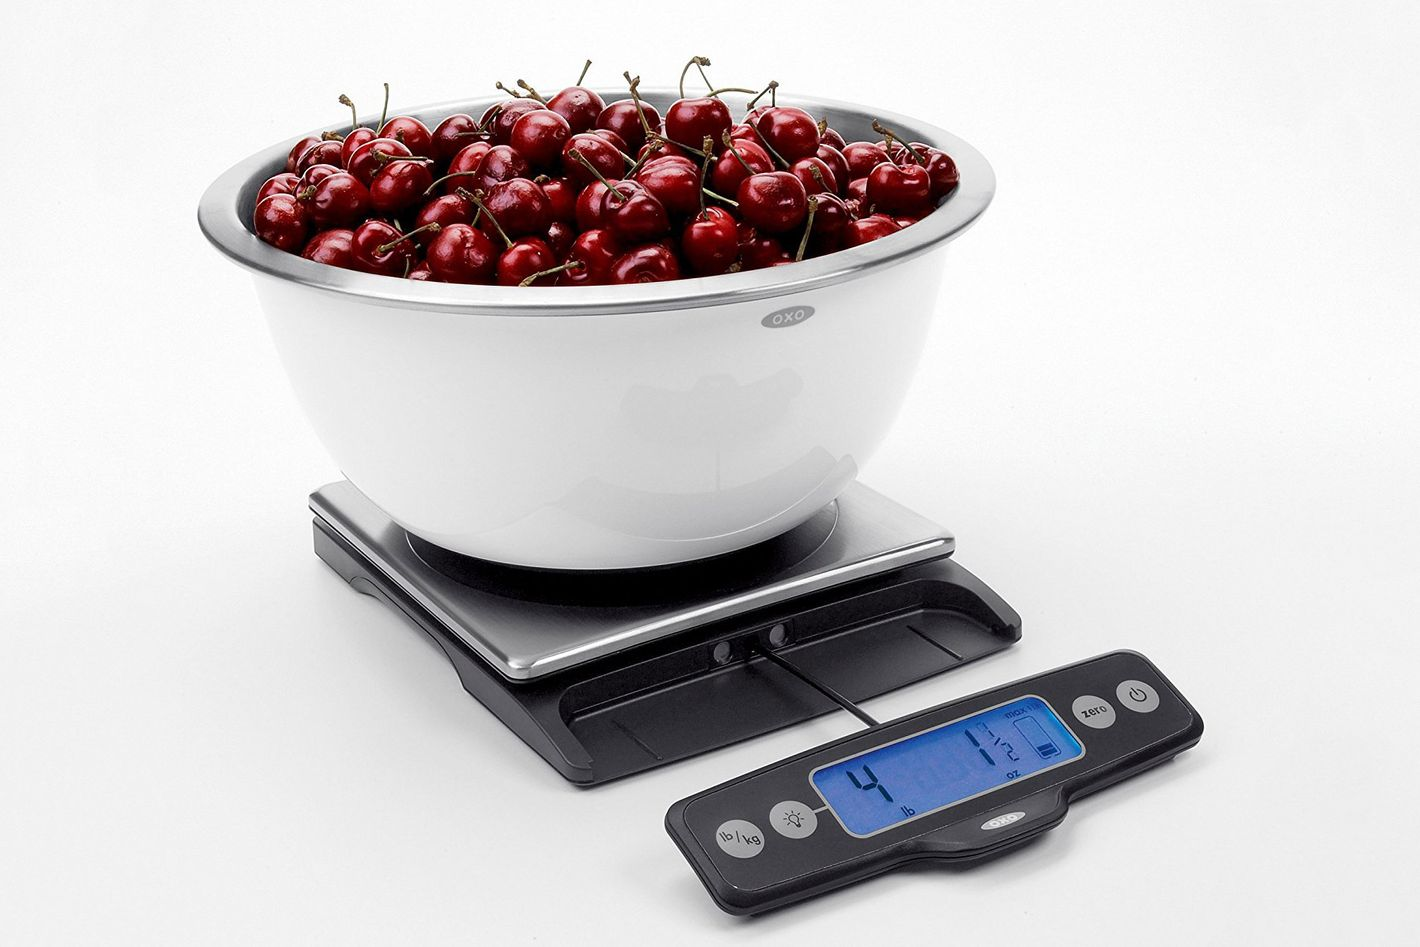 amazon red steel pin kitchen bowl stainless dexam in com retro scales